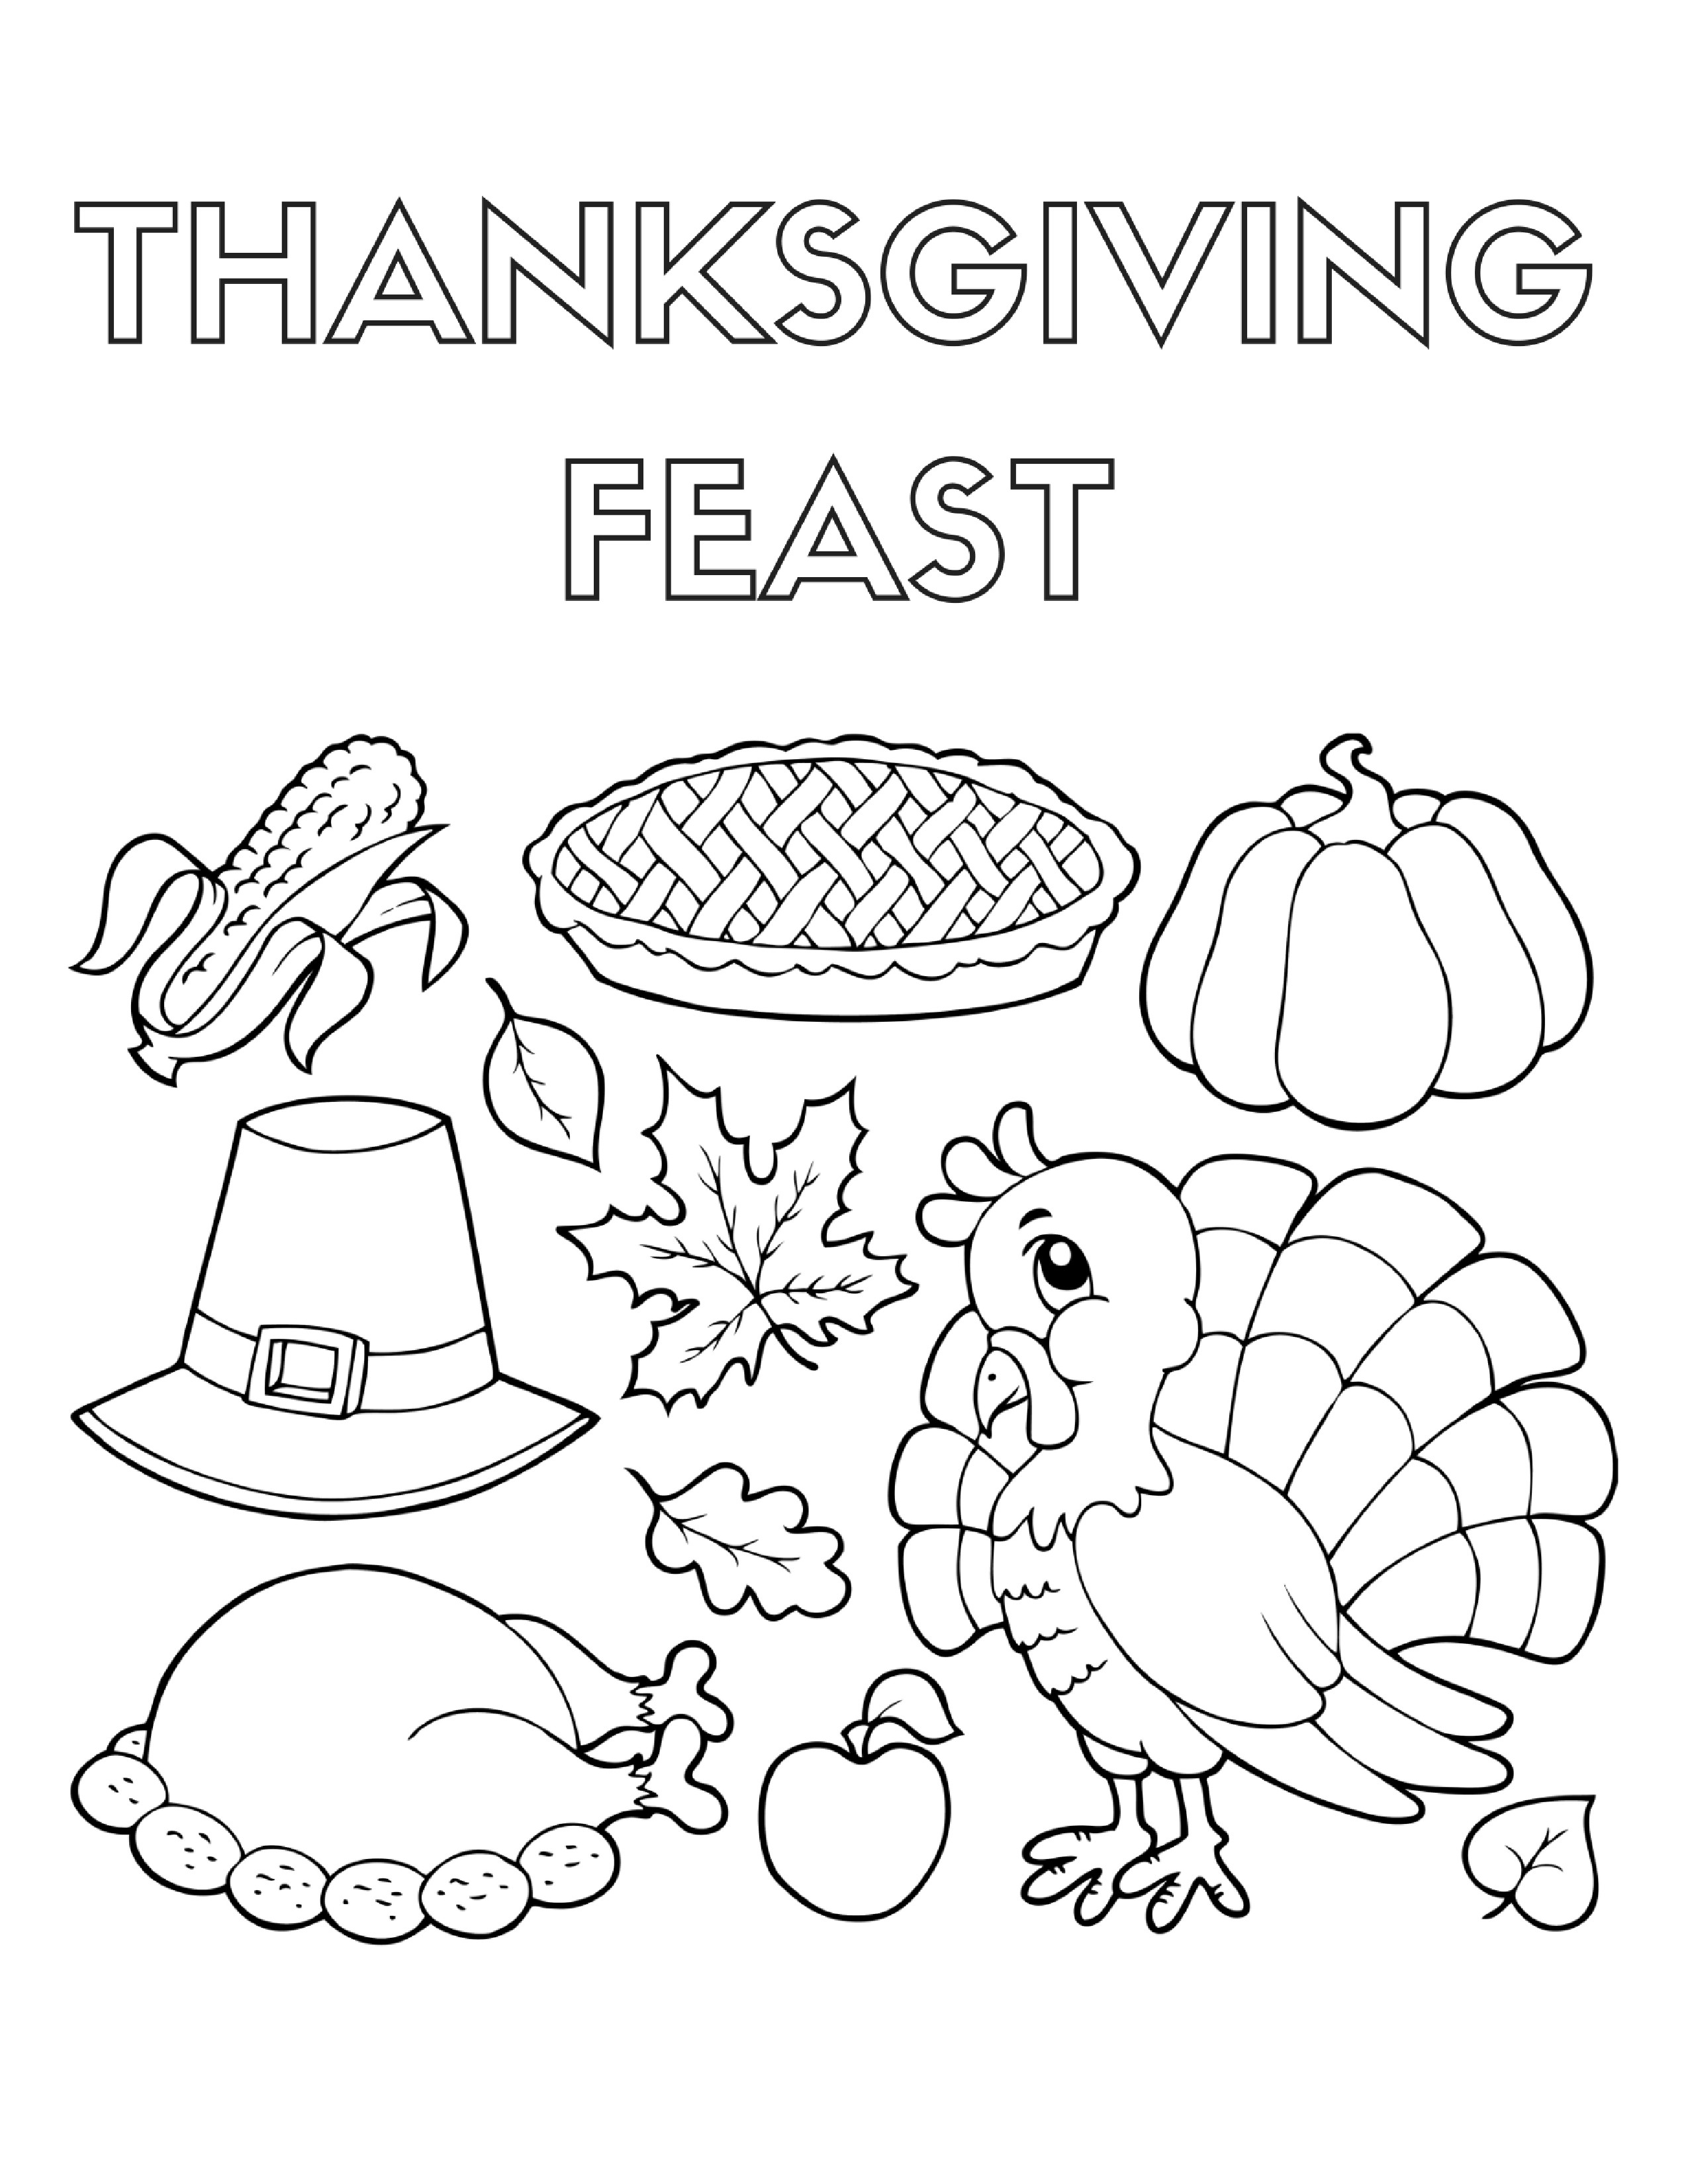 thanksgiving dinner coloring pages thanksgiving feast drawing at getdrawings free download pages coloring dinner thanksgiving